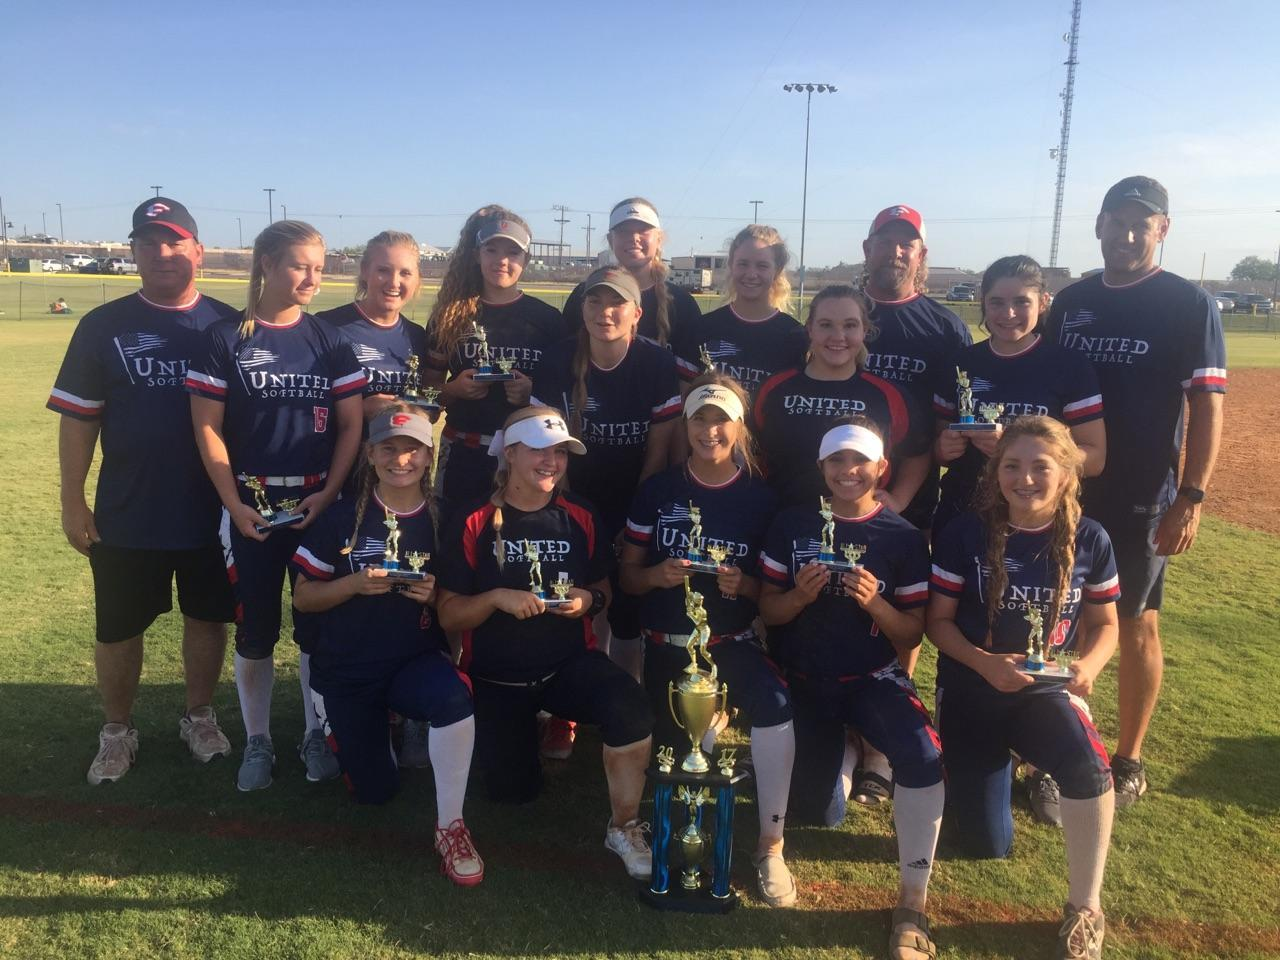 United Softball 3rd Place 18U